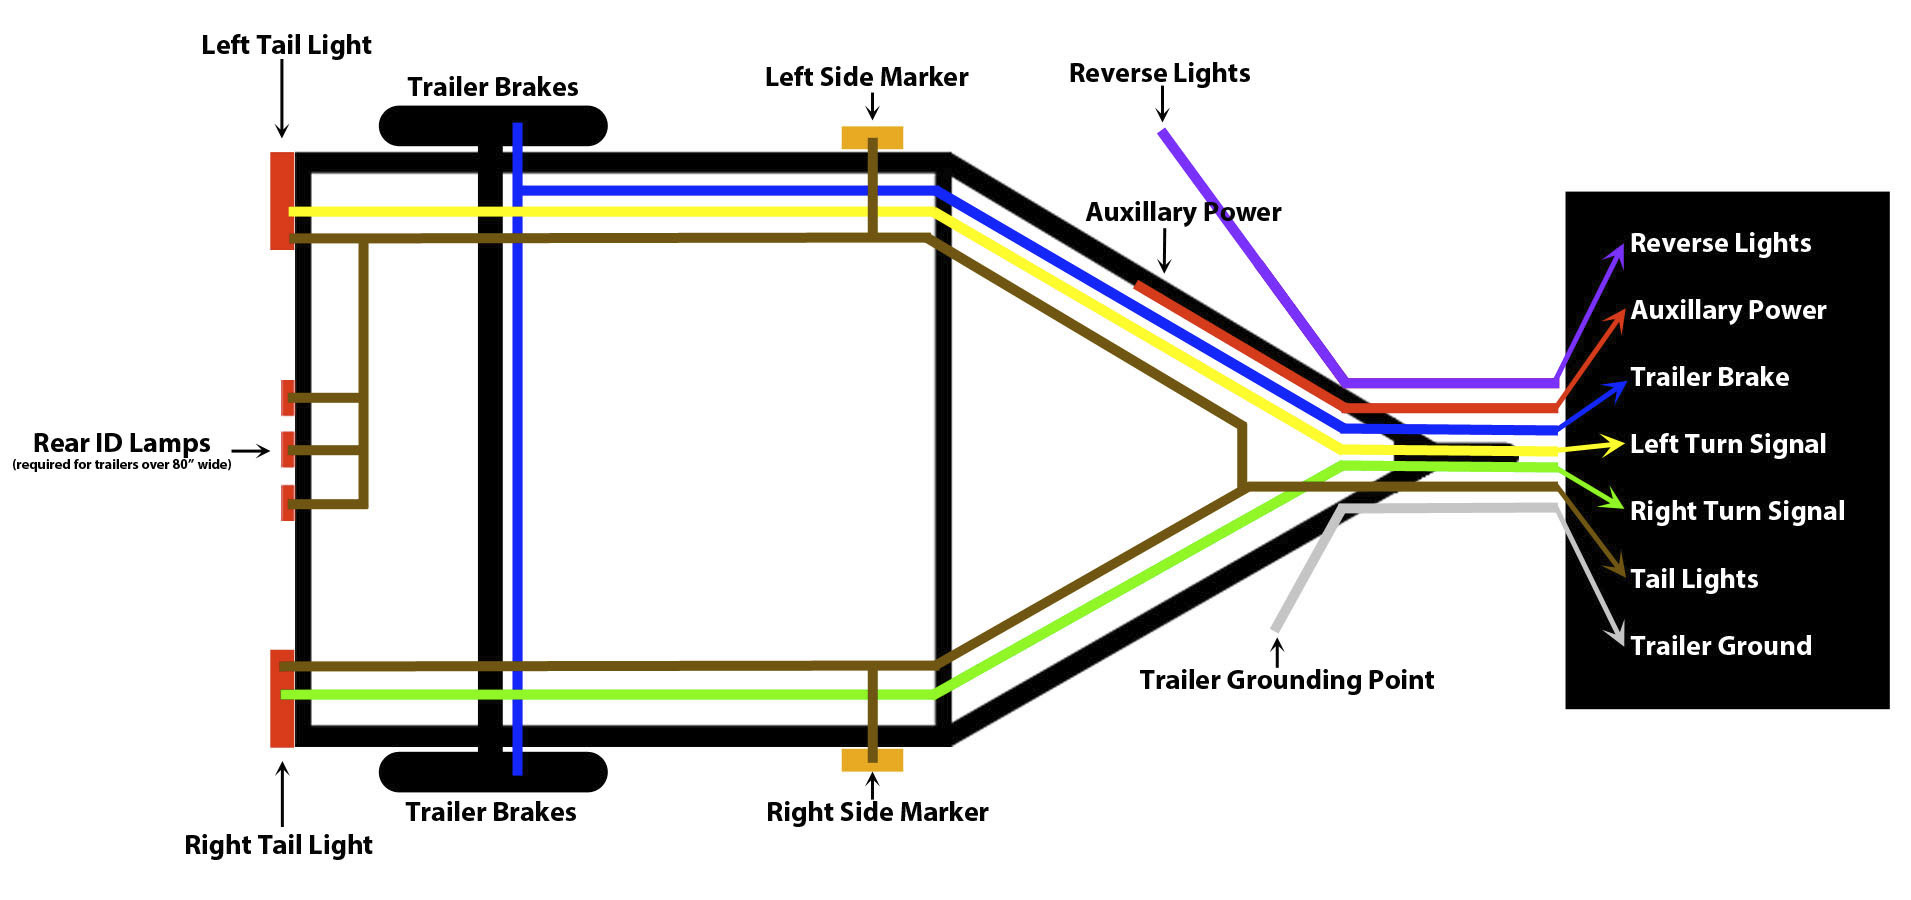 How To Wire Trailer Lights - Trailer Wiring Guide & Videos - Wiring Trailer Lights Diagram